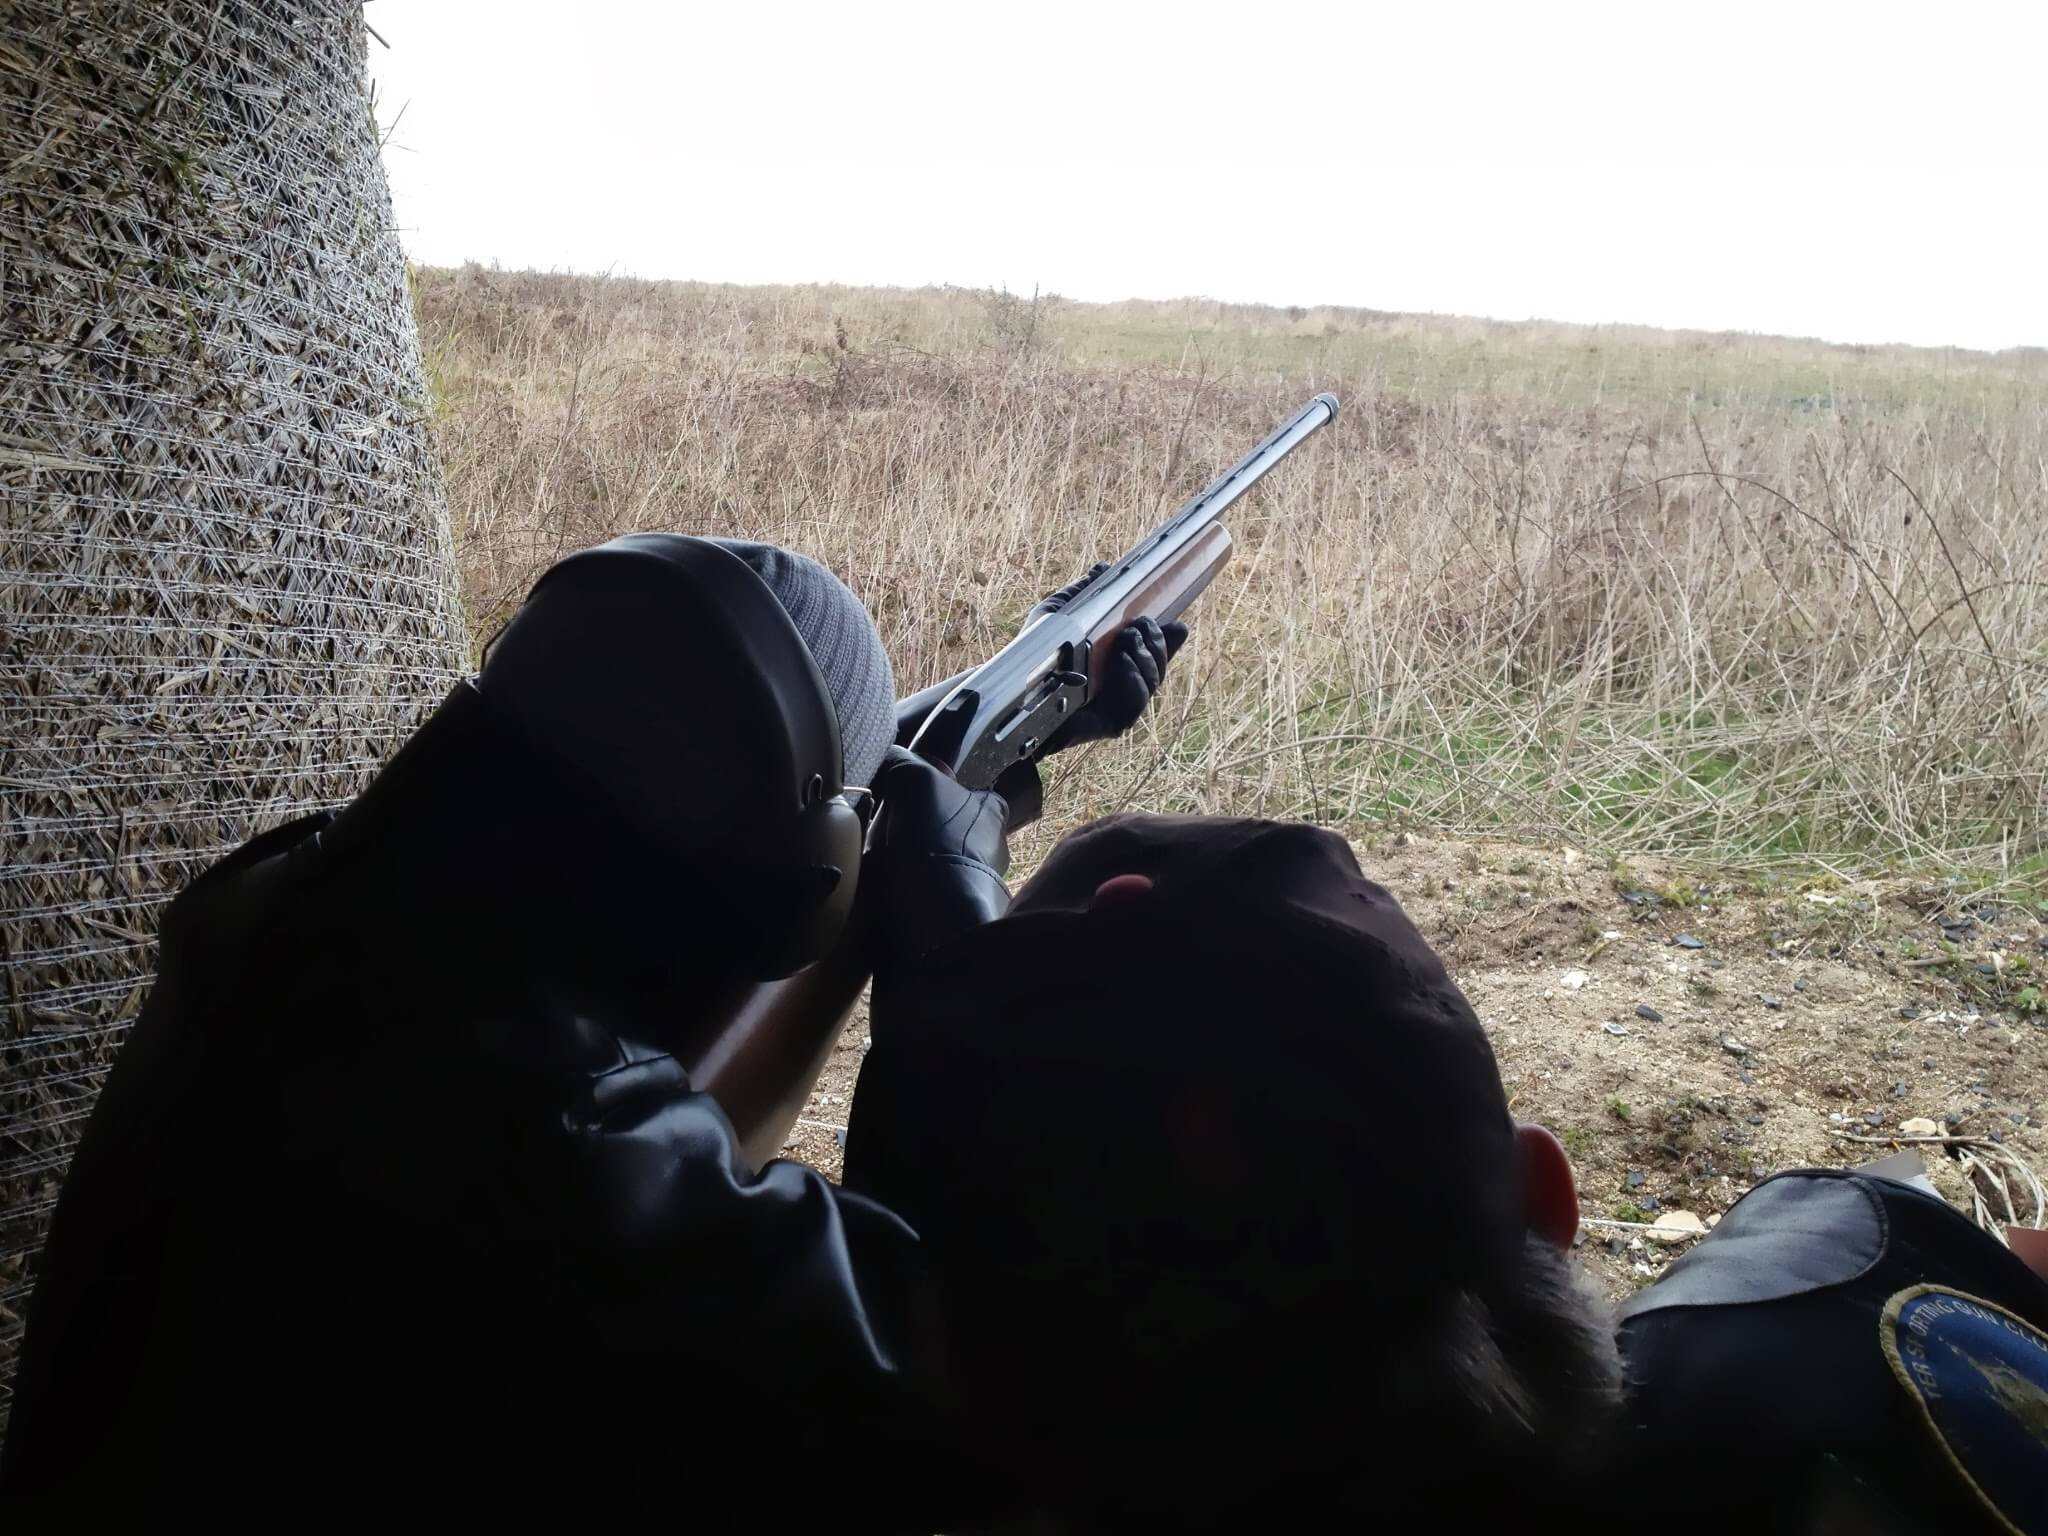 waiting for clay pigeon to shoot near brighton